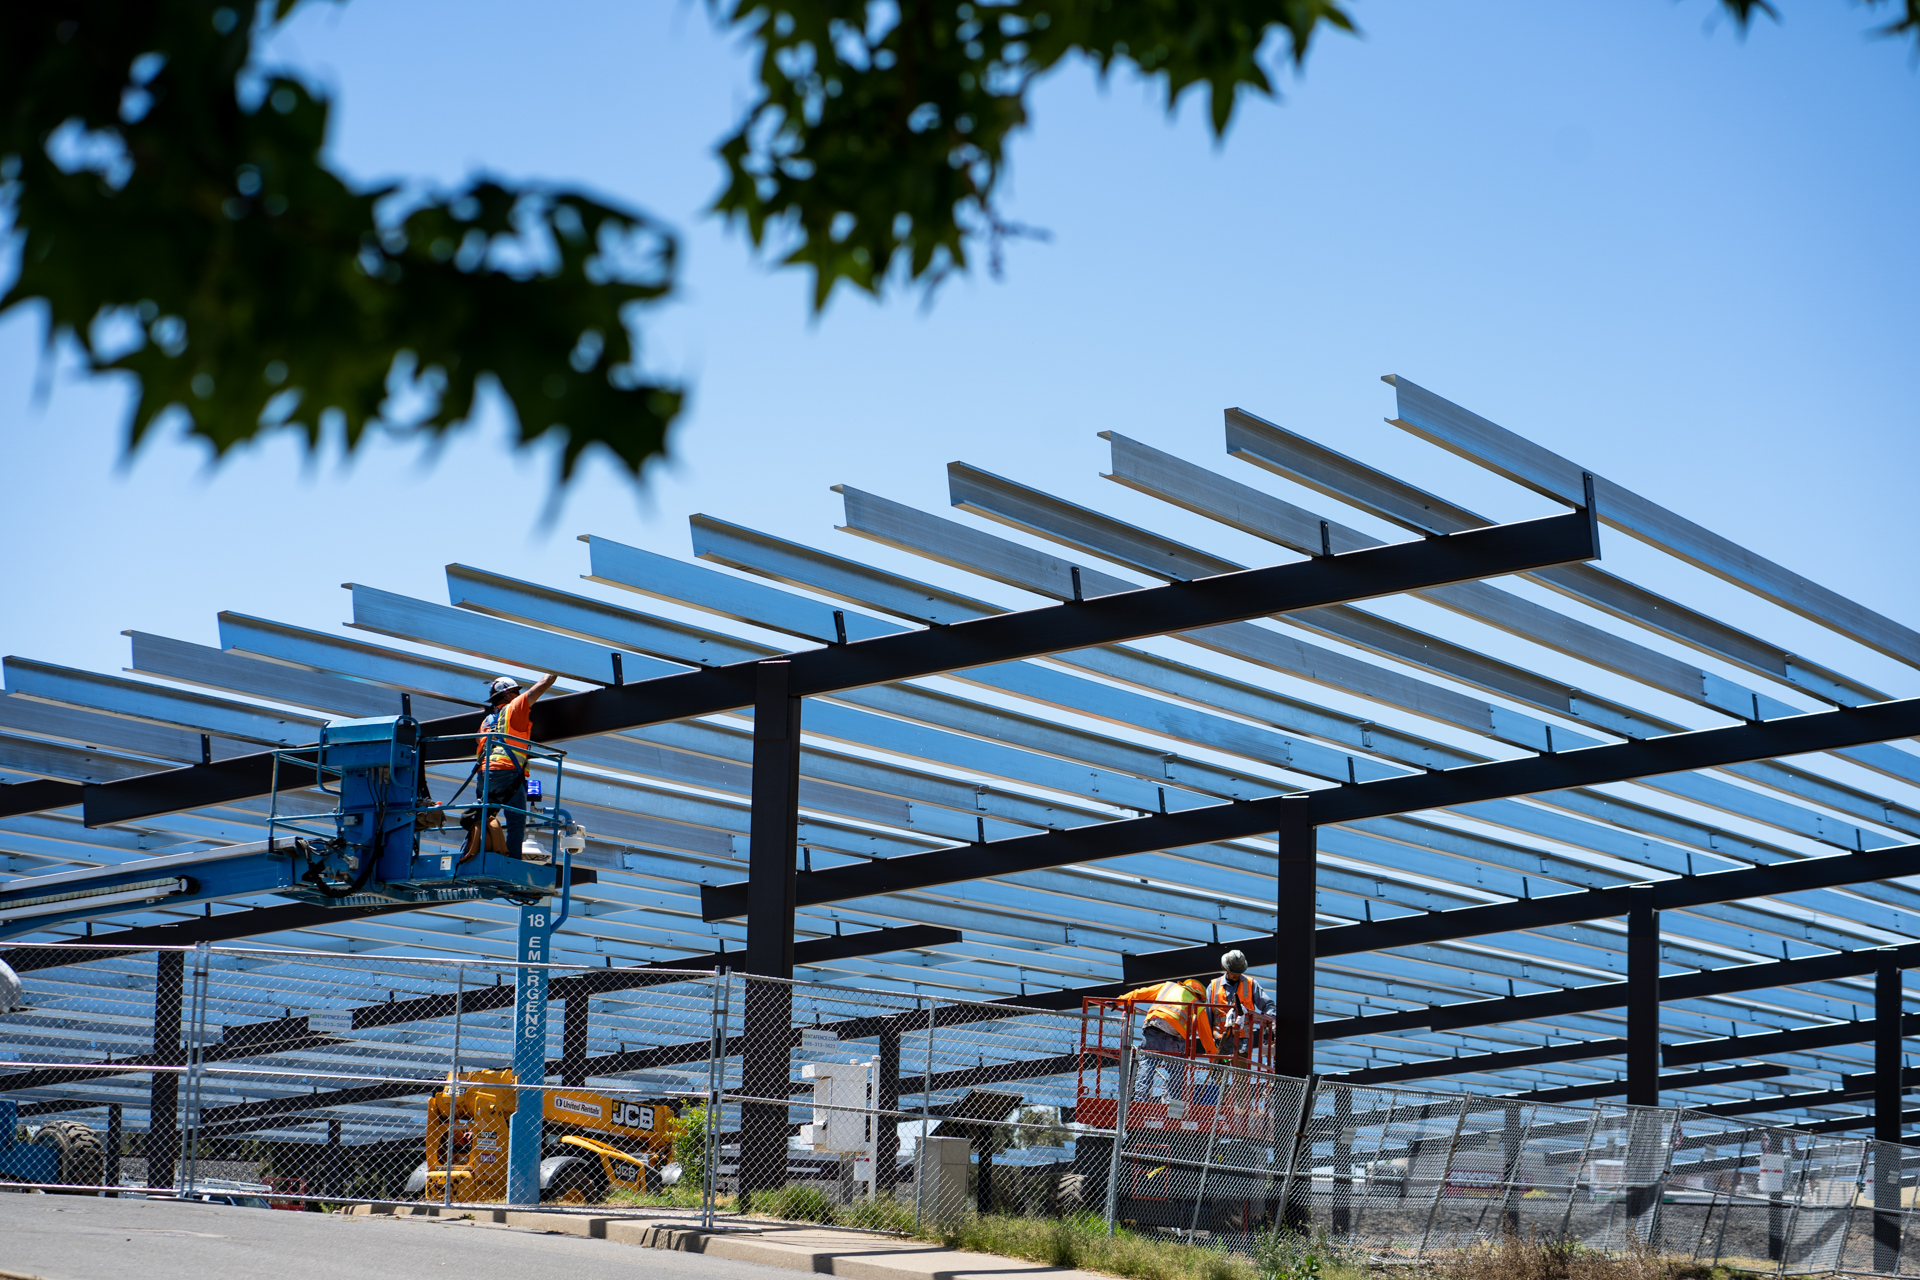 Work continues to complete installation of a solar array at Sacramento State.